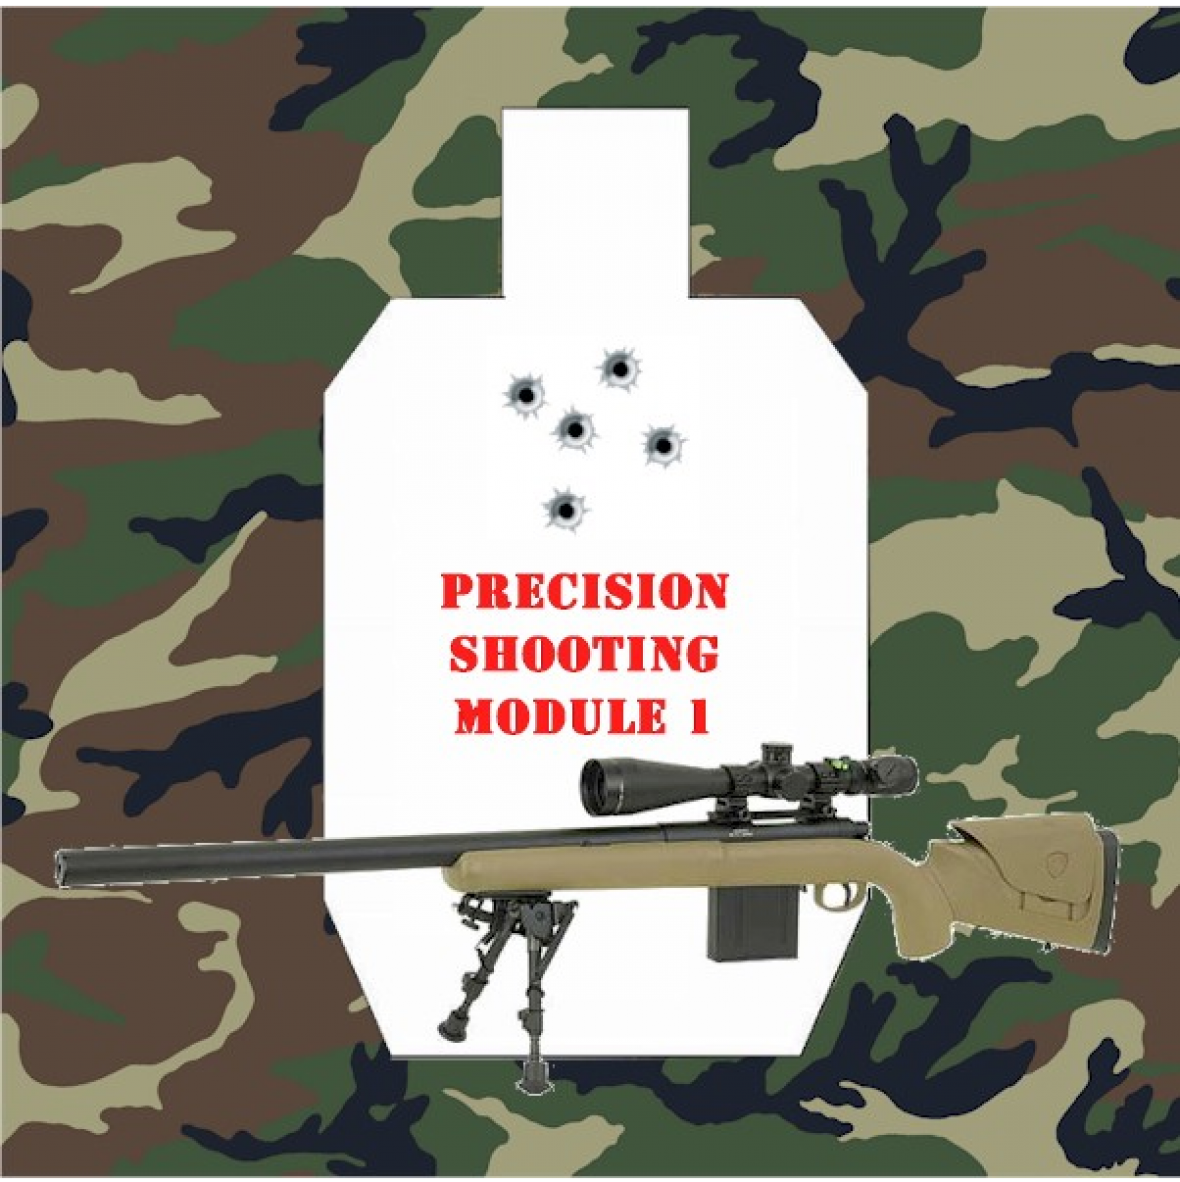 Precision Shooting Module 1